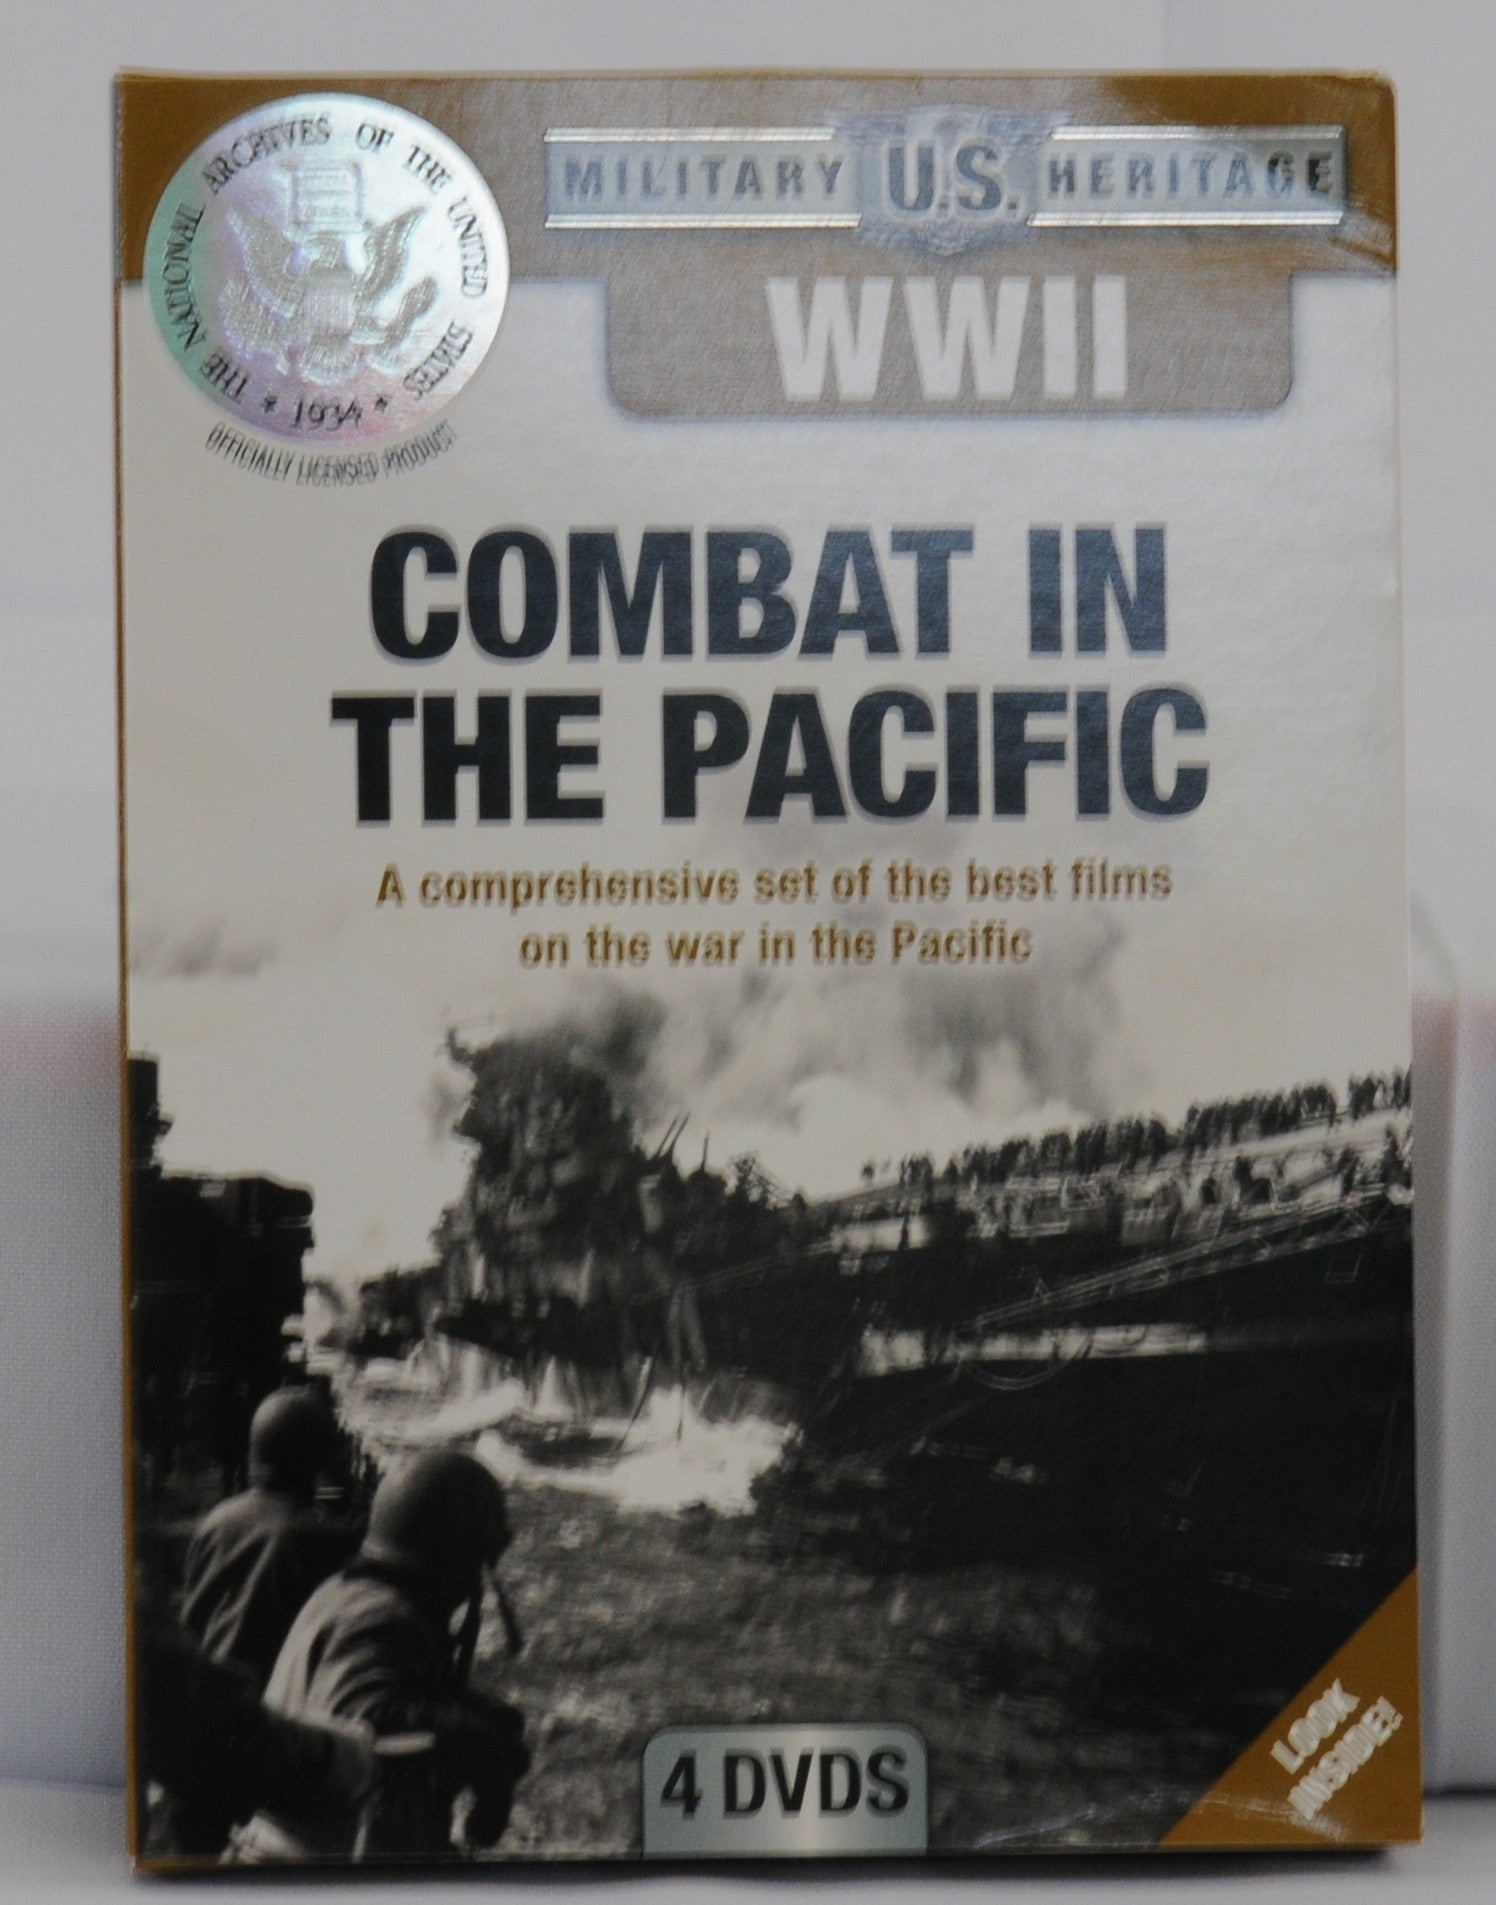 Combat in the Pacific DVD